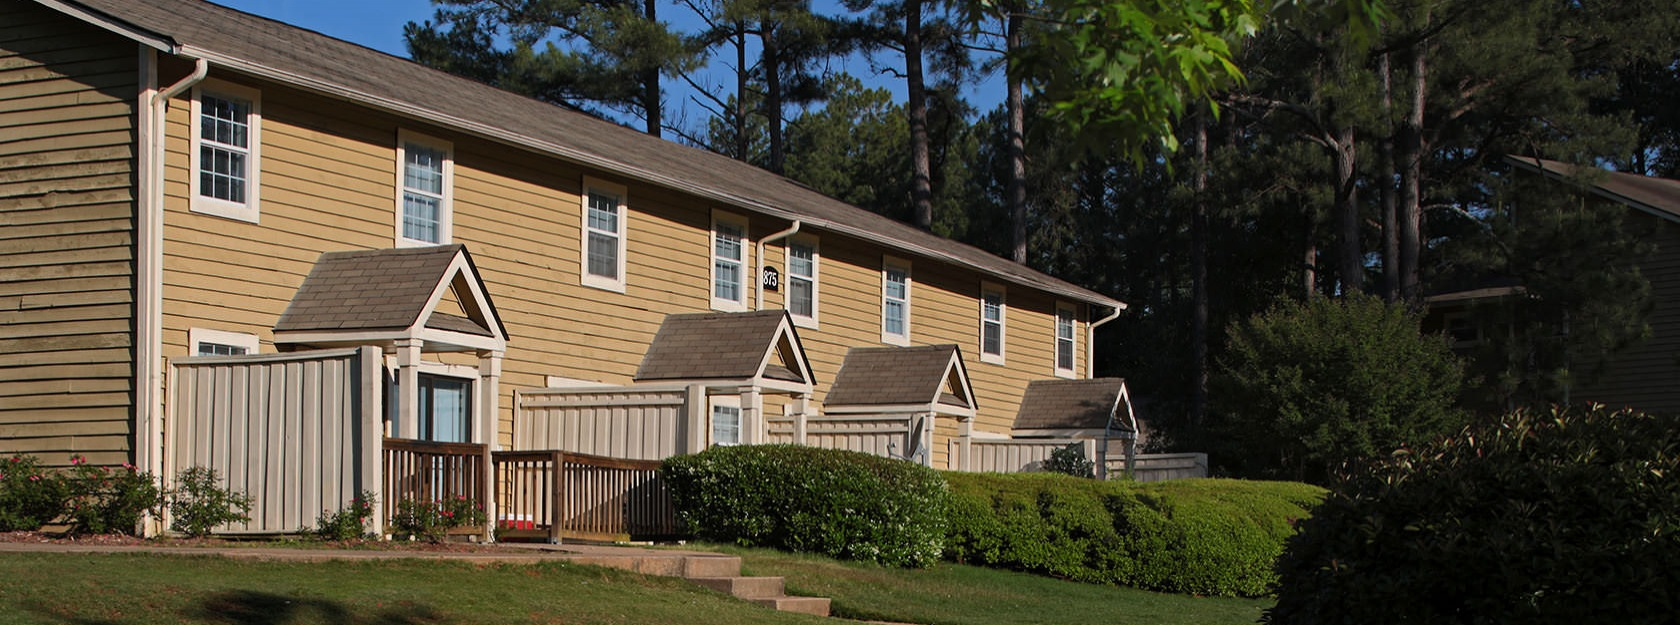 apartments with private, fenced-in yards amid well maintained landscaping